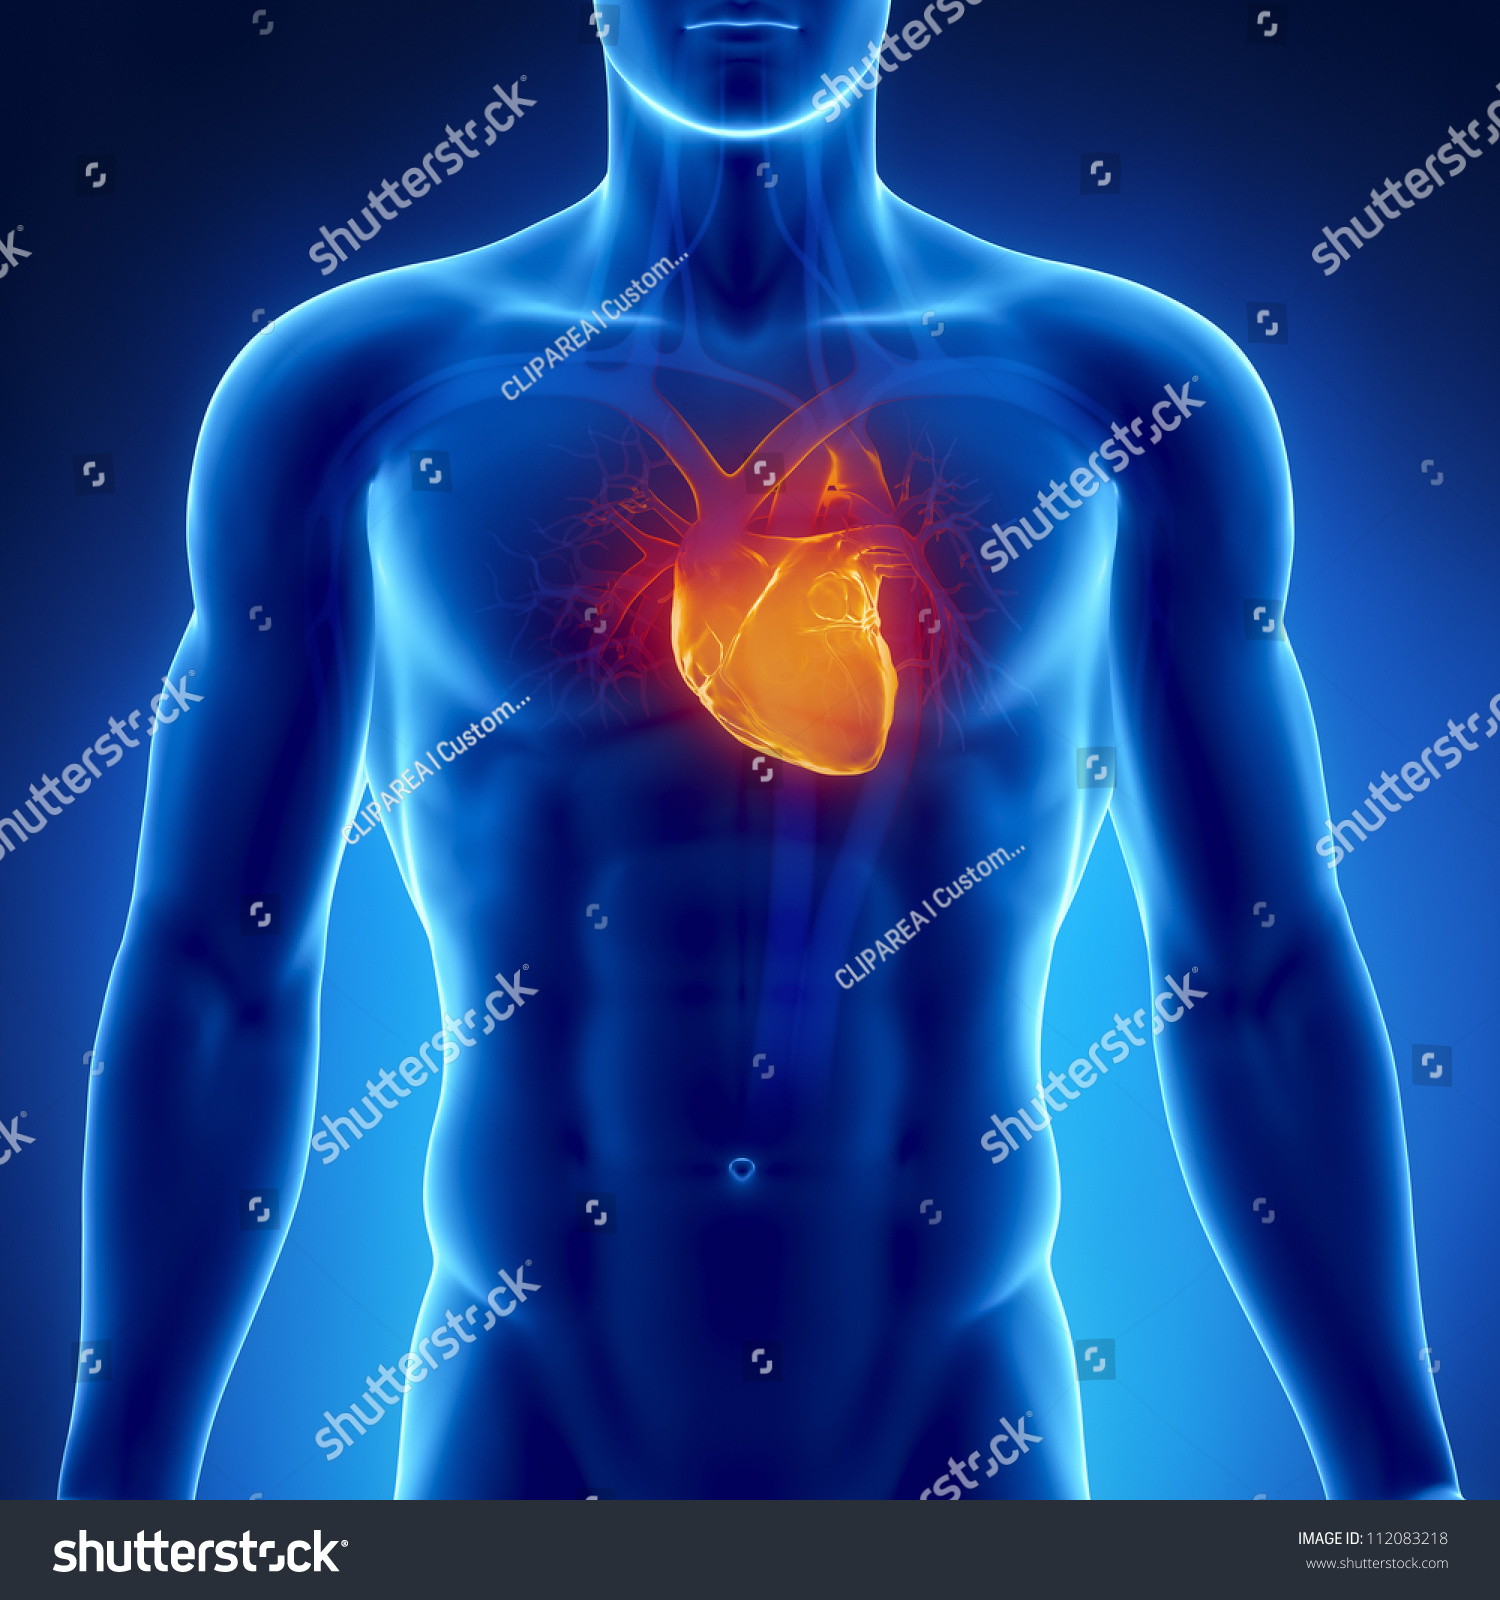 Glowing Heart Male Chest Footage Available Stock Illustration